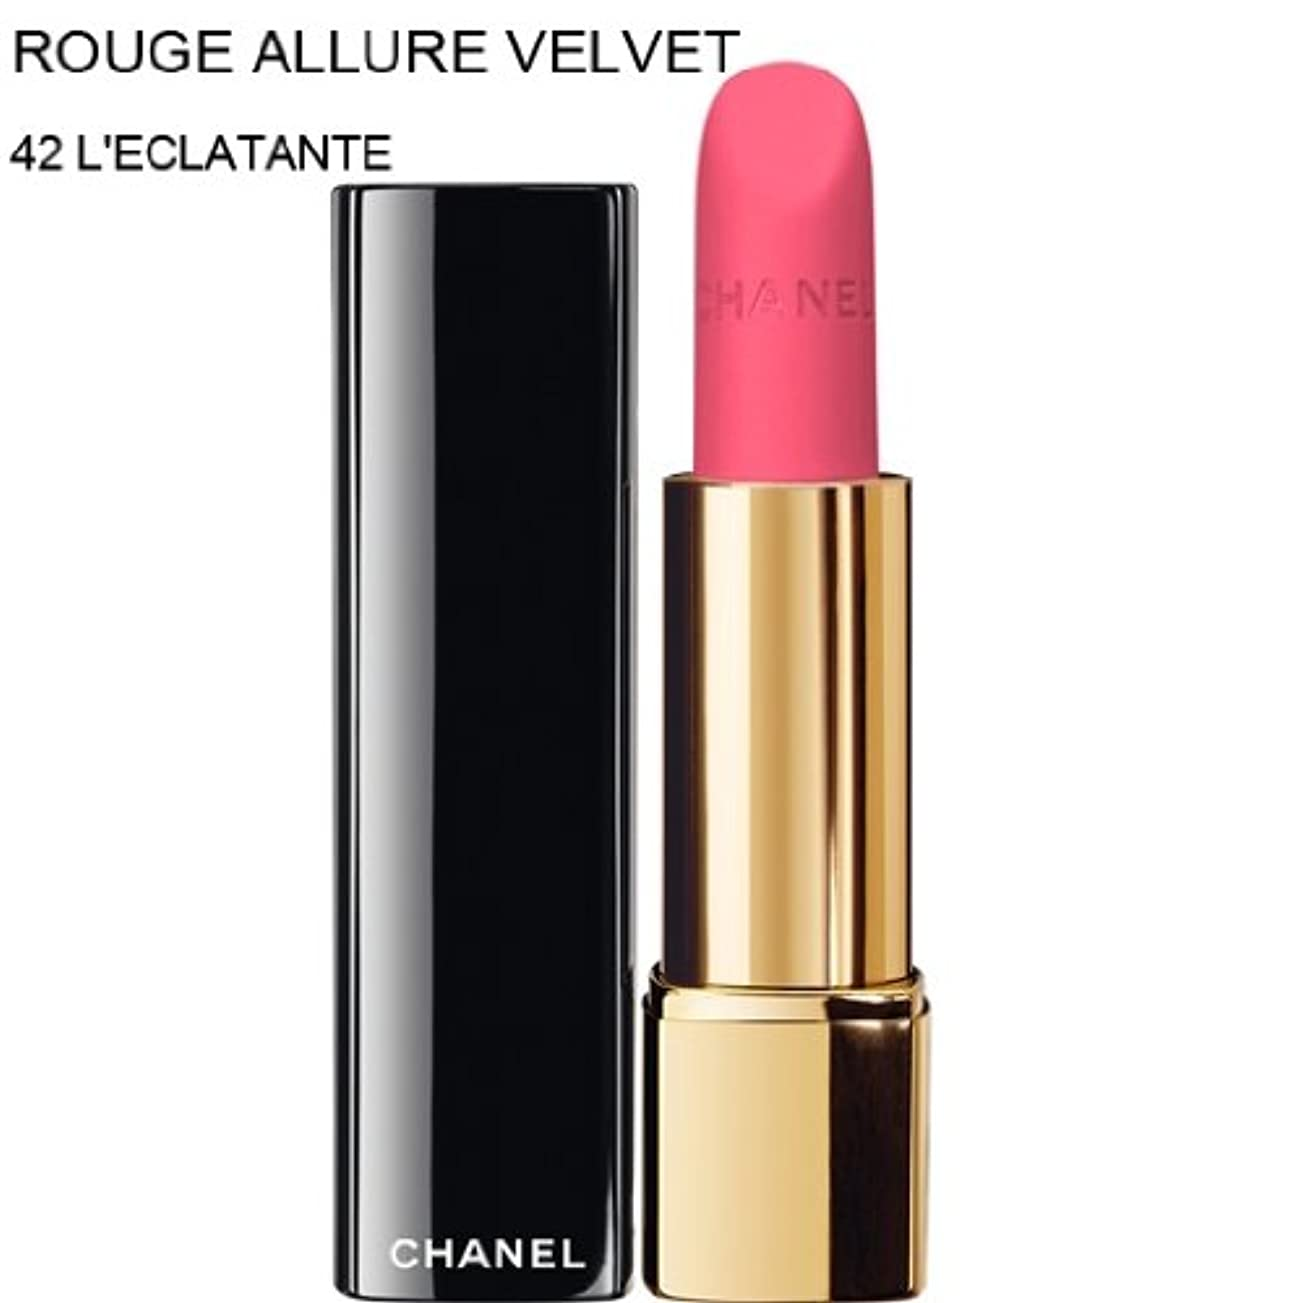 ピケ交換イチゴCHANEL-Lipstick ROUGE ALLURE VELVET (42 L'ECLATANTE) (parallel imported item 並行輸入品)